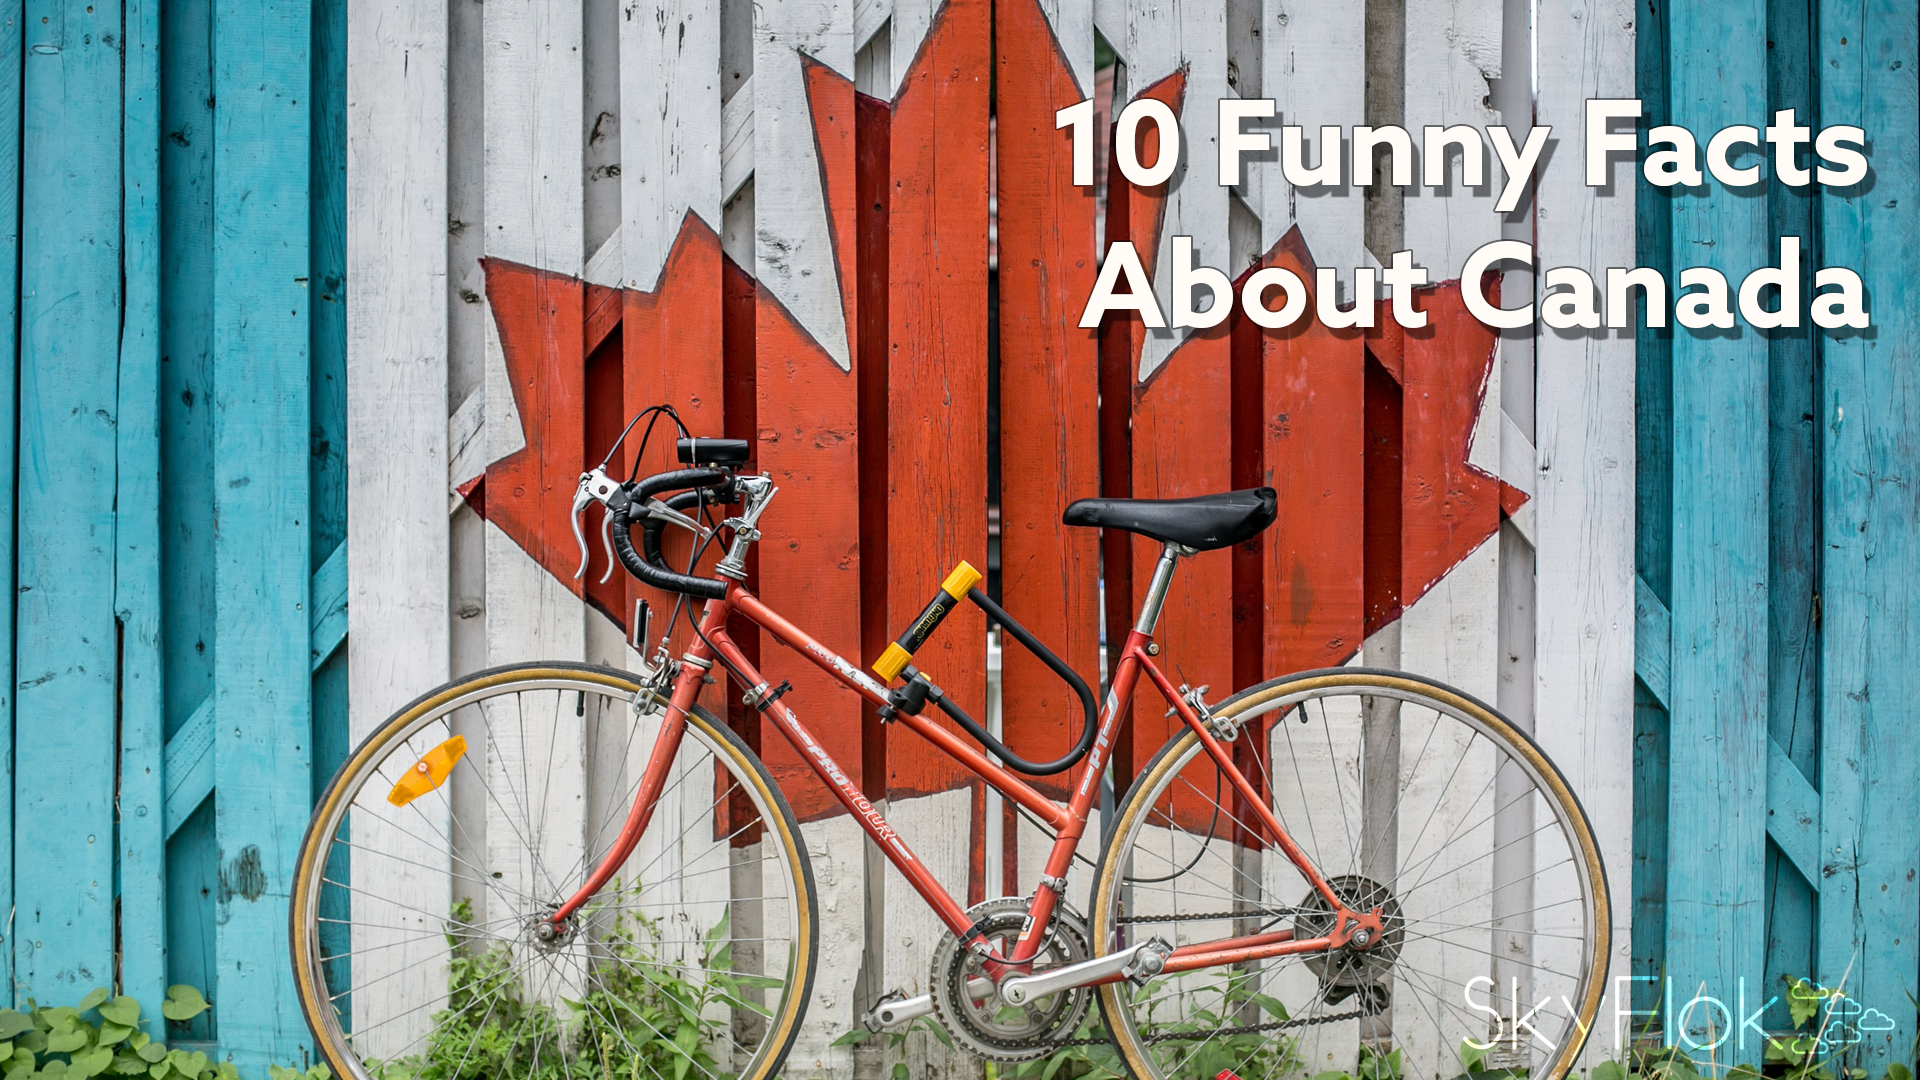 10 funny facts about Canada